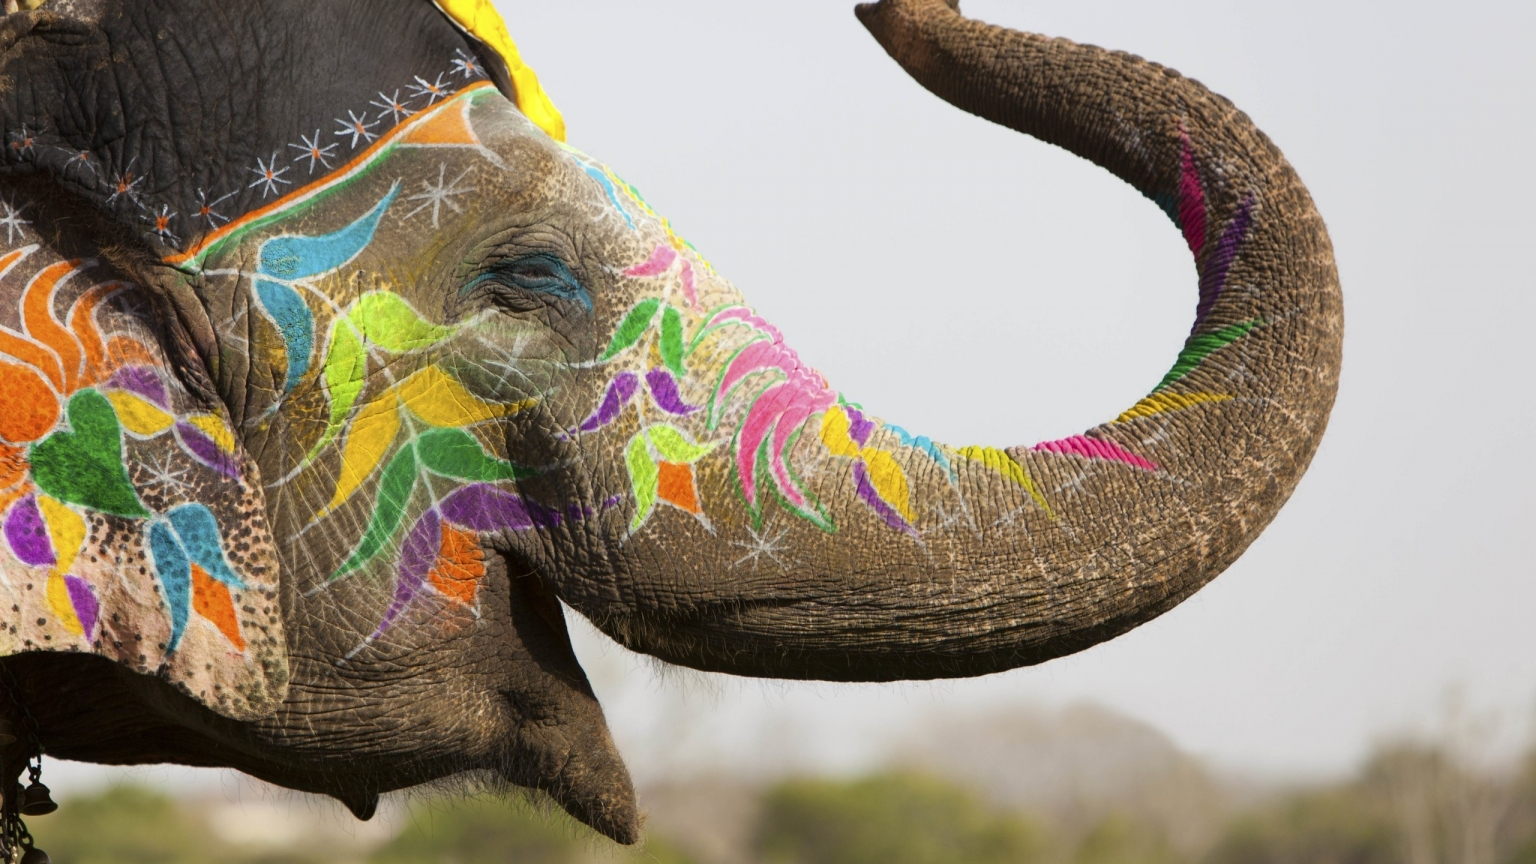 Colored Elephant for 1536 x 864 HDTV resolution